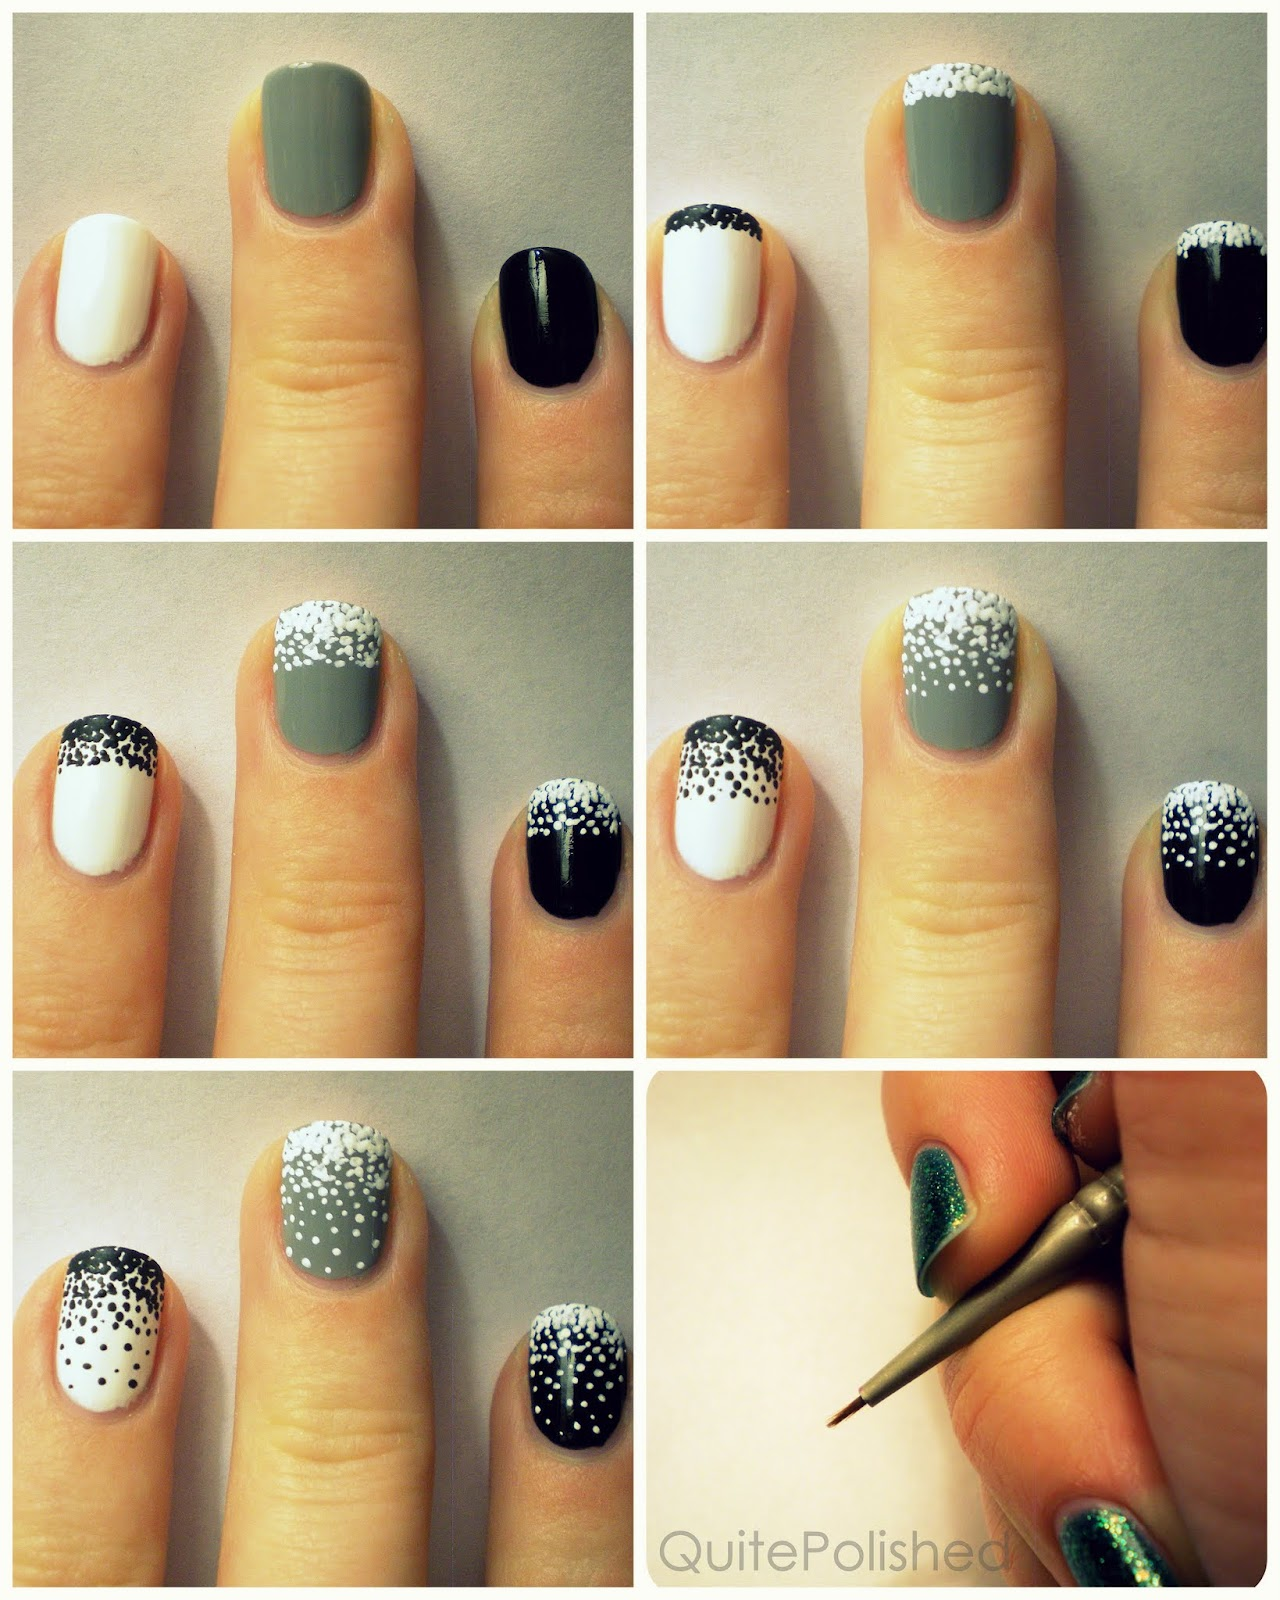 Snow Nail Art This Topped Look Is So Much Fun To Recreate But It S Also Easy Which What We Re All Looking For Quite Polished Has An Way